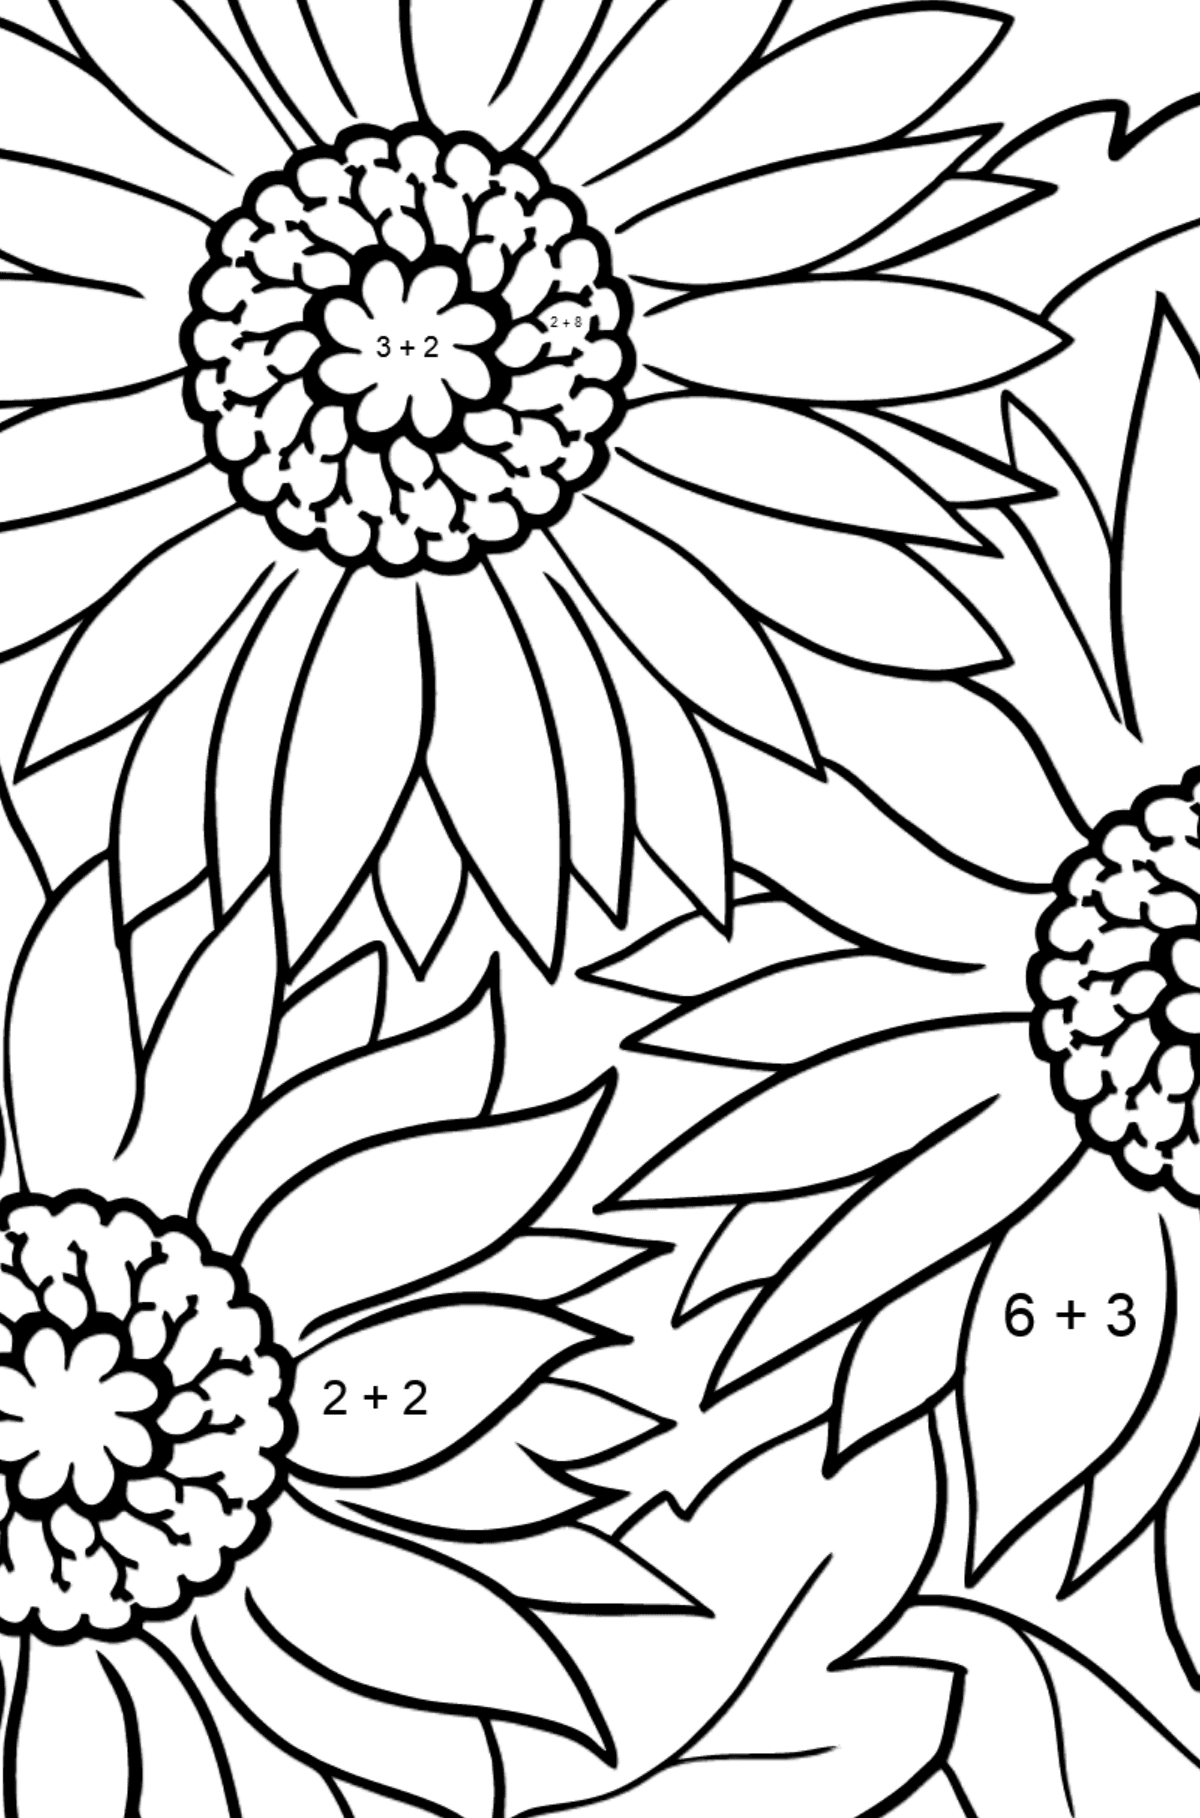 Coloring Flowers for the Youngest Children - Pink Gerbera - Math Coloring - Addition for Kids